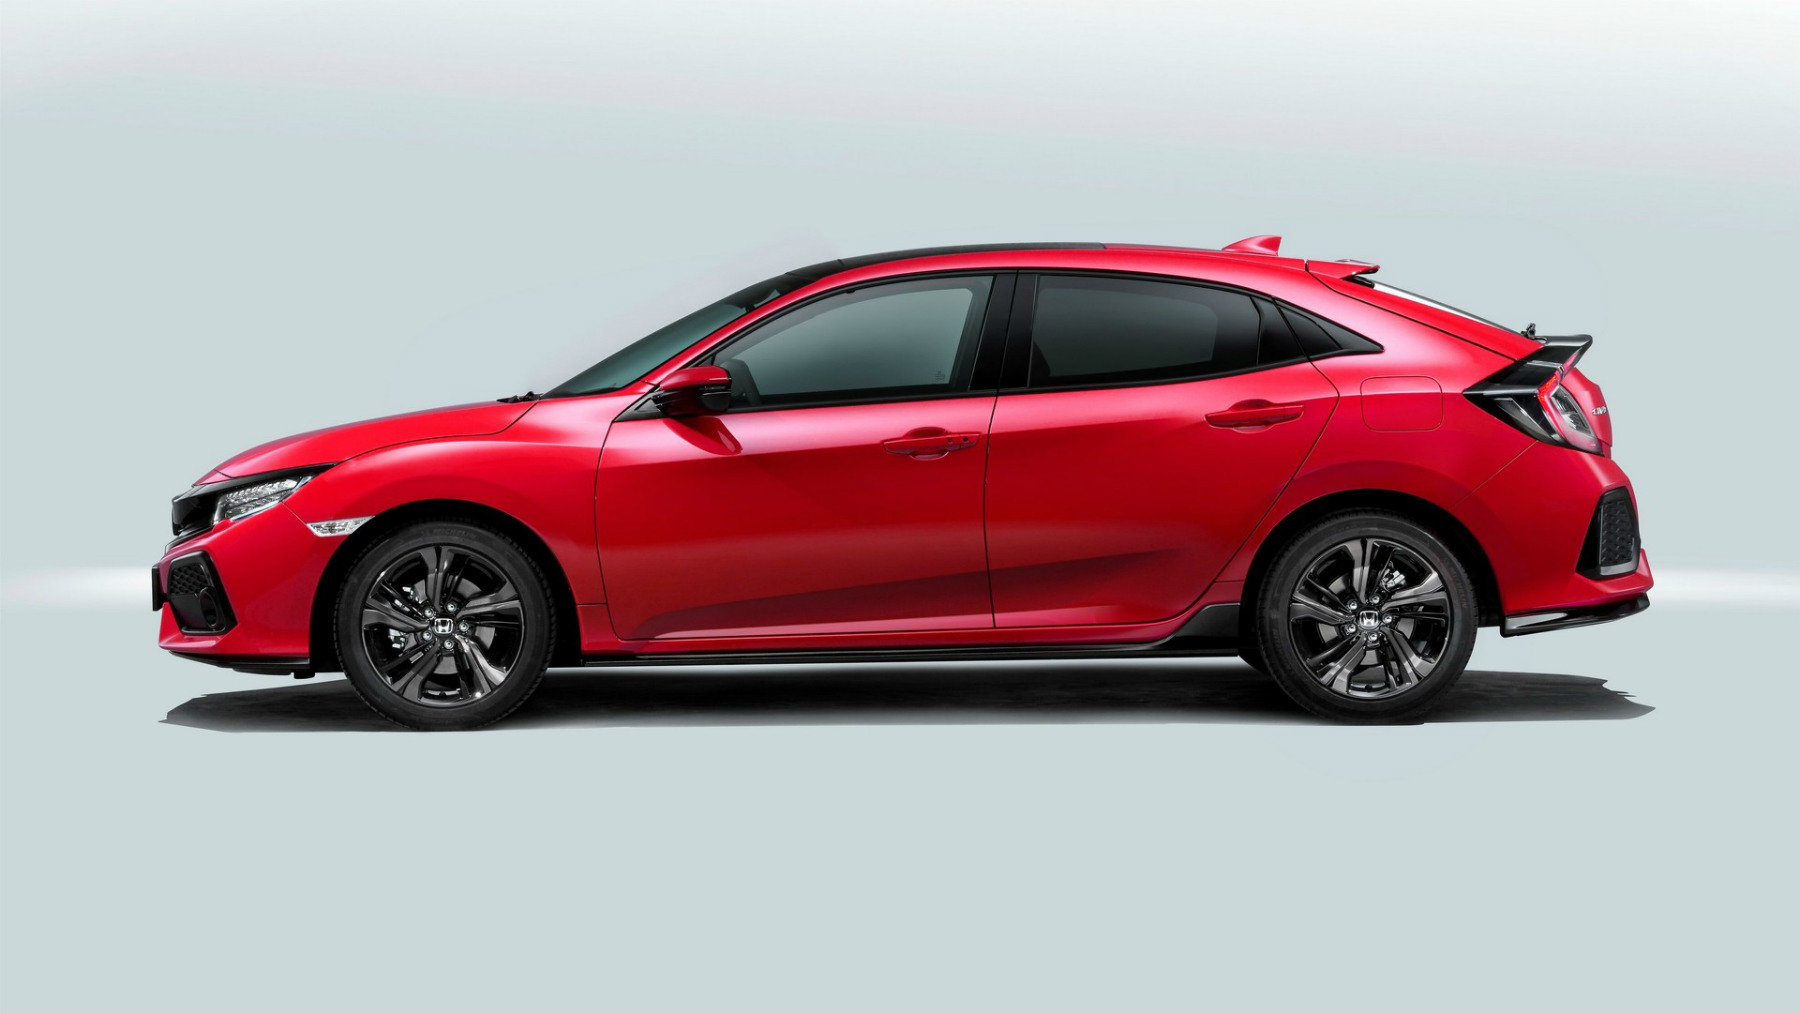 honda civic 6 из европы